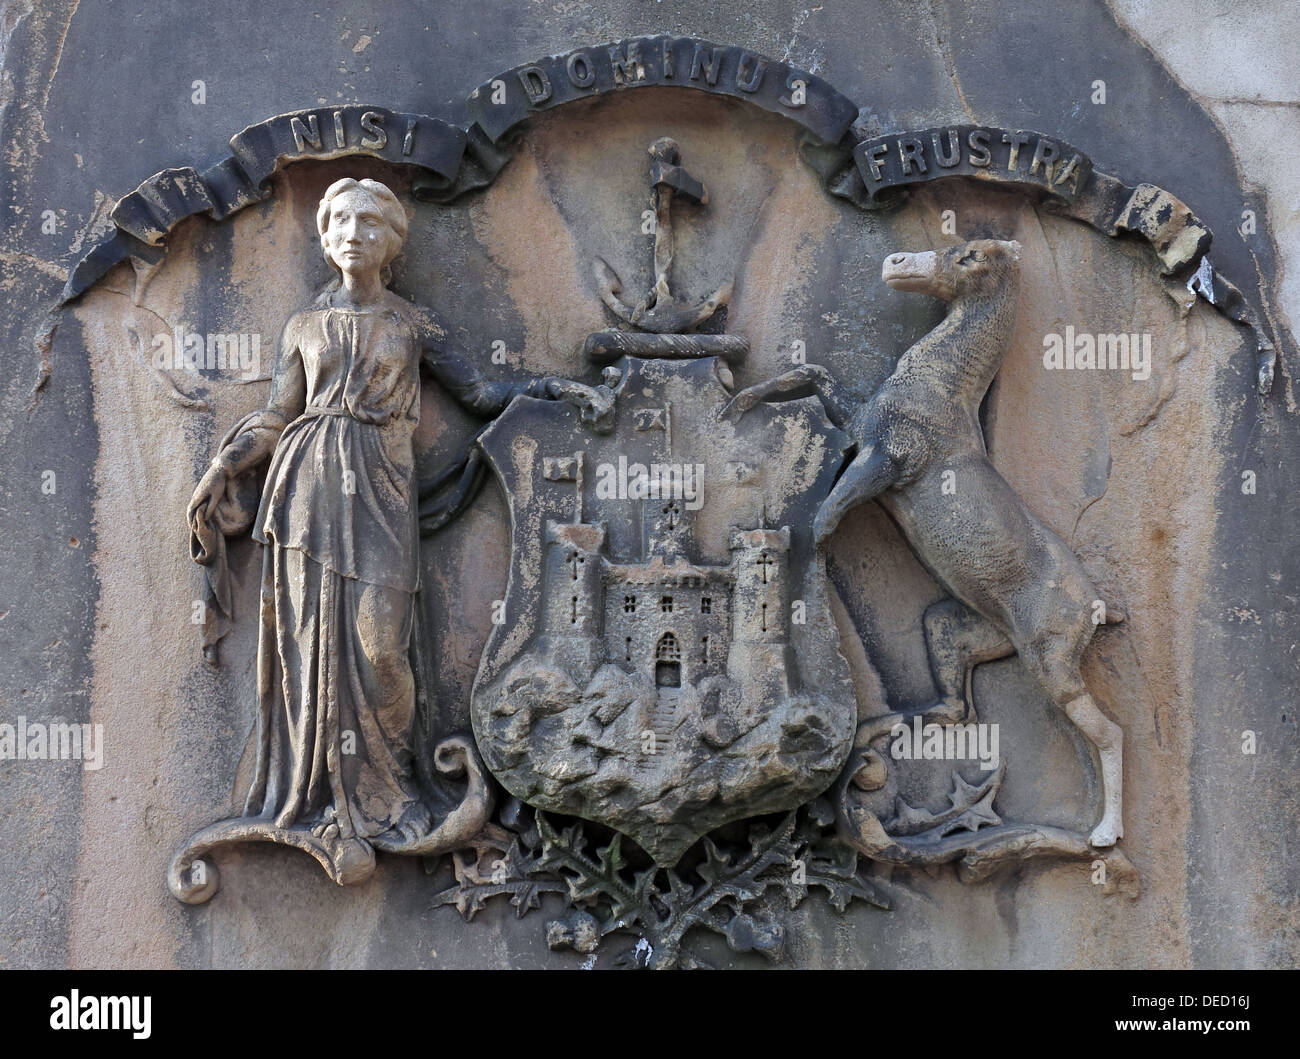 Nisi Dominus Frustra, The Crest of Edinburgh, on city stone fountain,Scotland - Stock Image